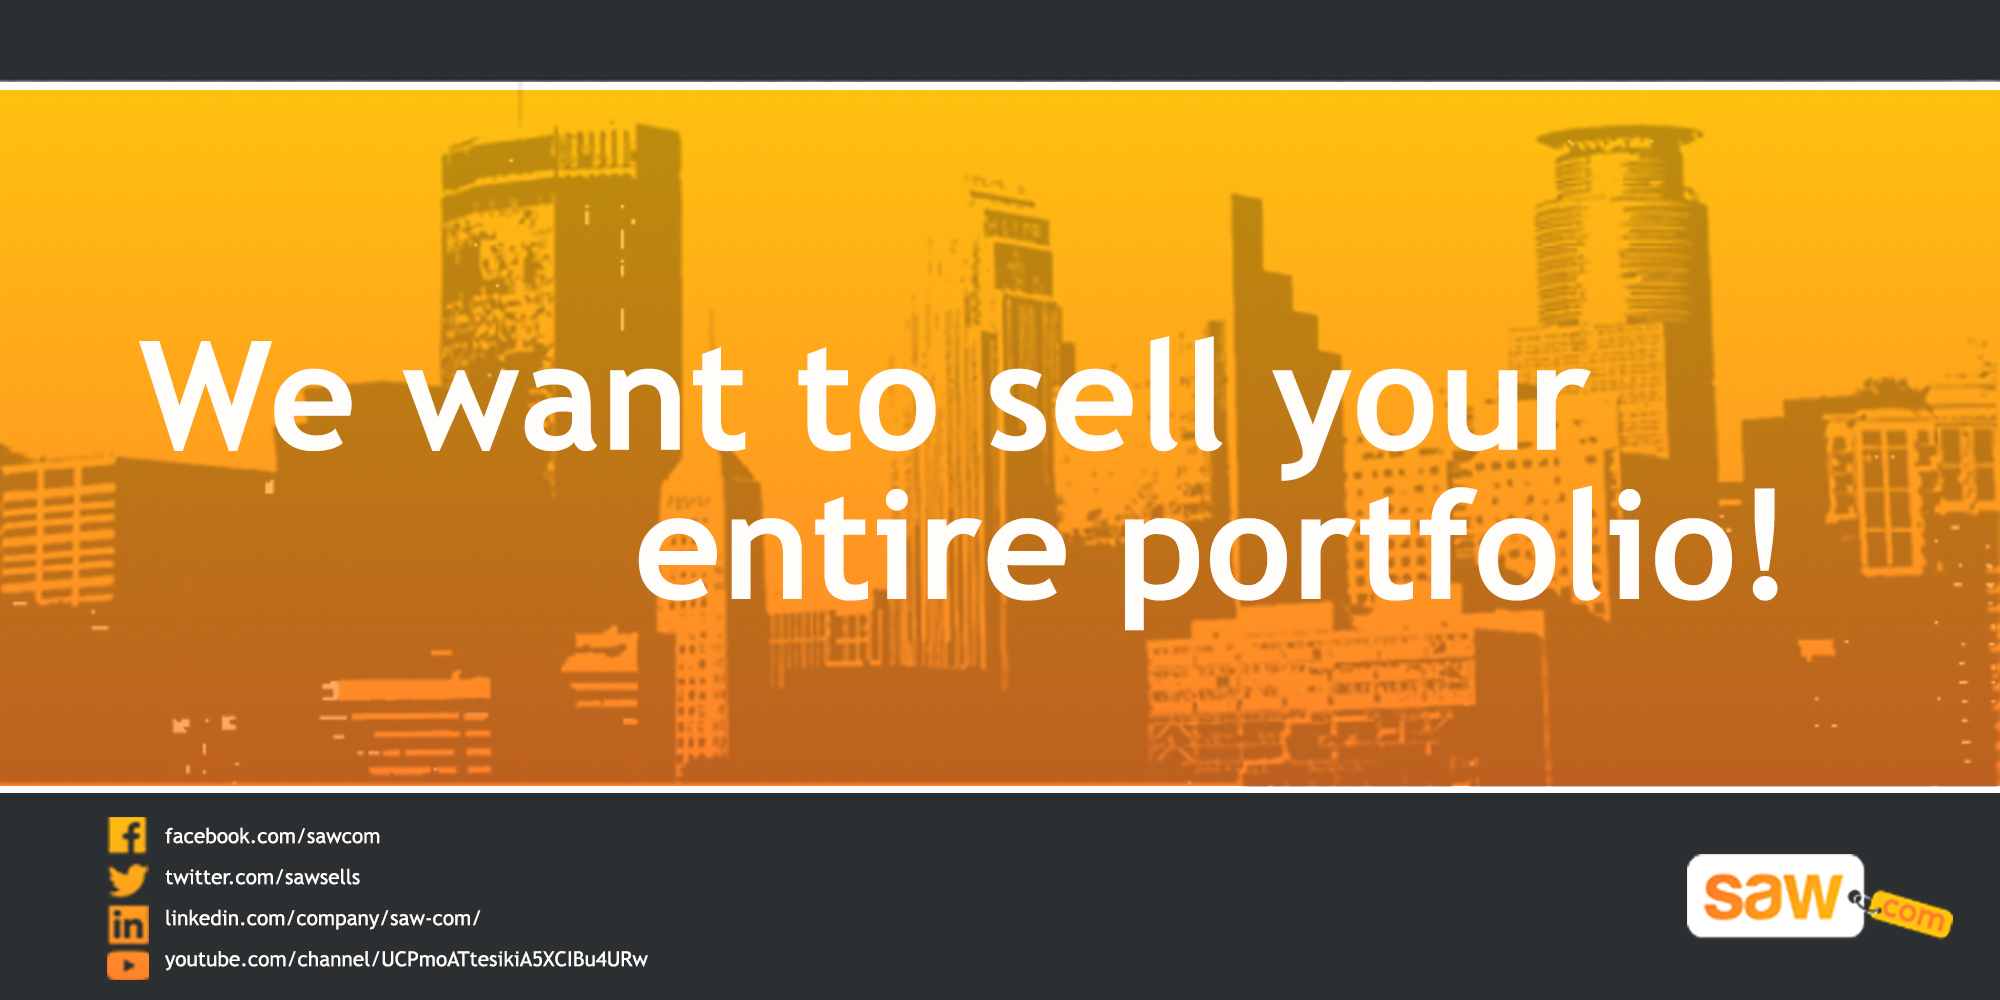 Have you been considering the possibility of selling your domain portfolio in 2020?